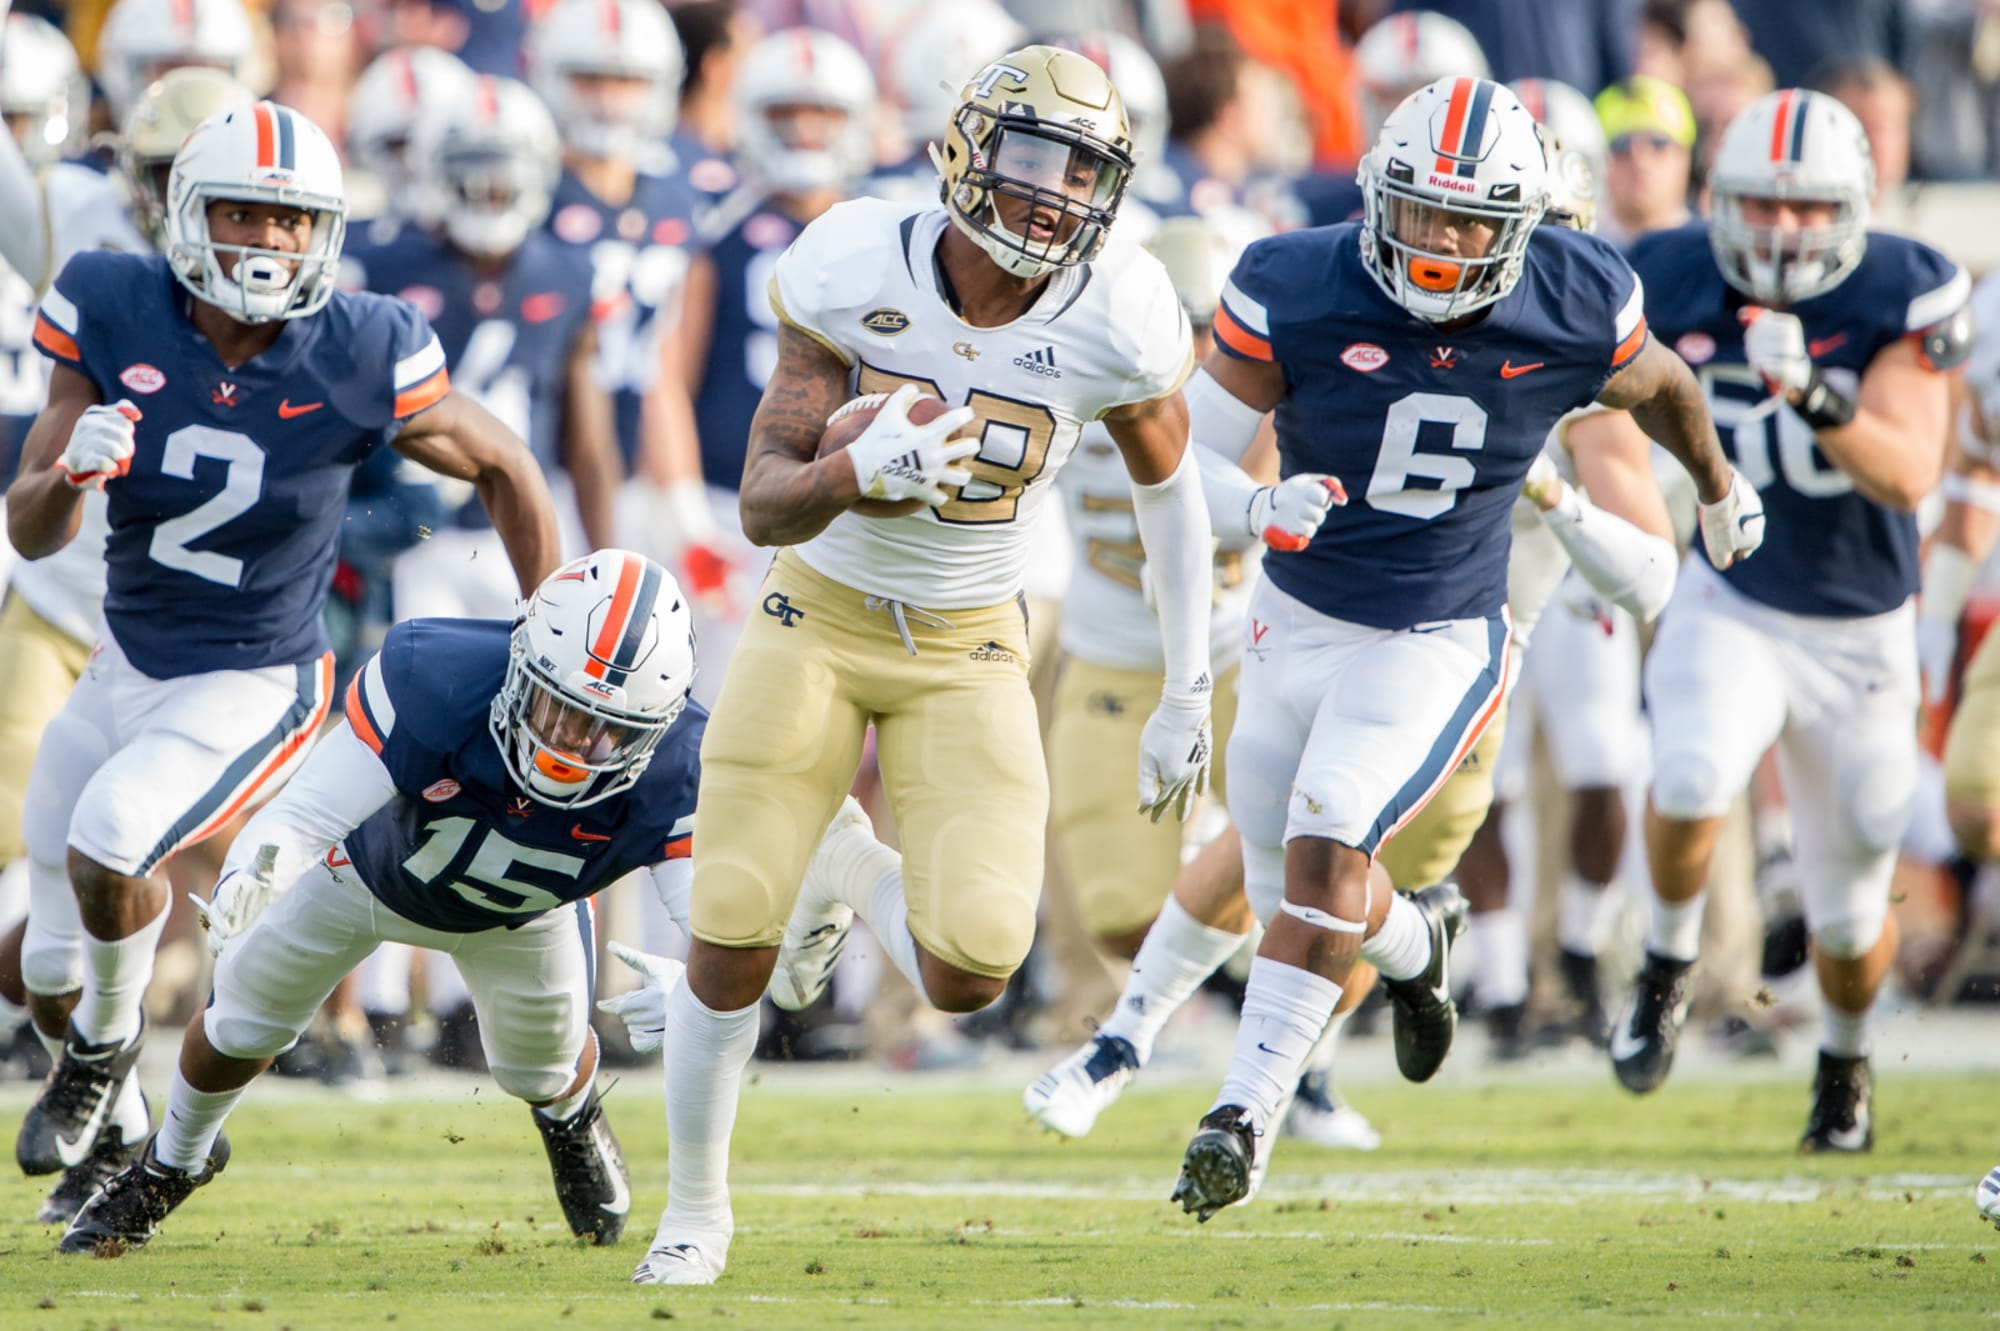 Georgia Tech Football A First Look At The Jackets 2019 Schedule